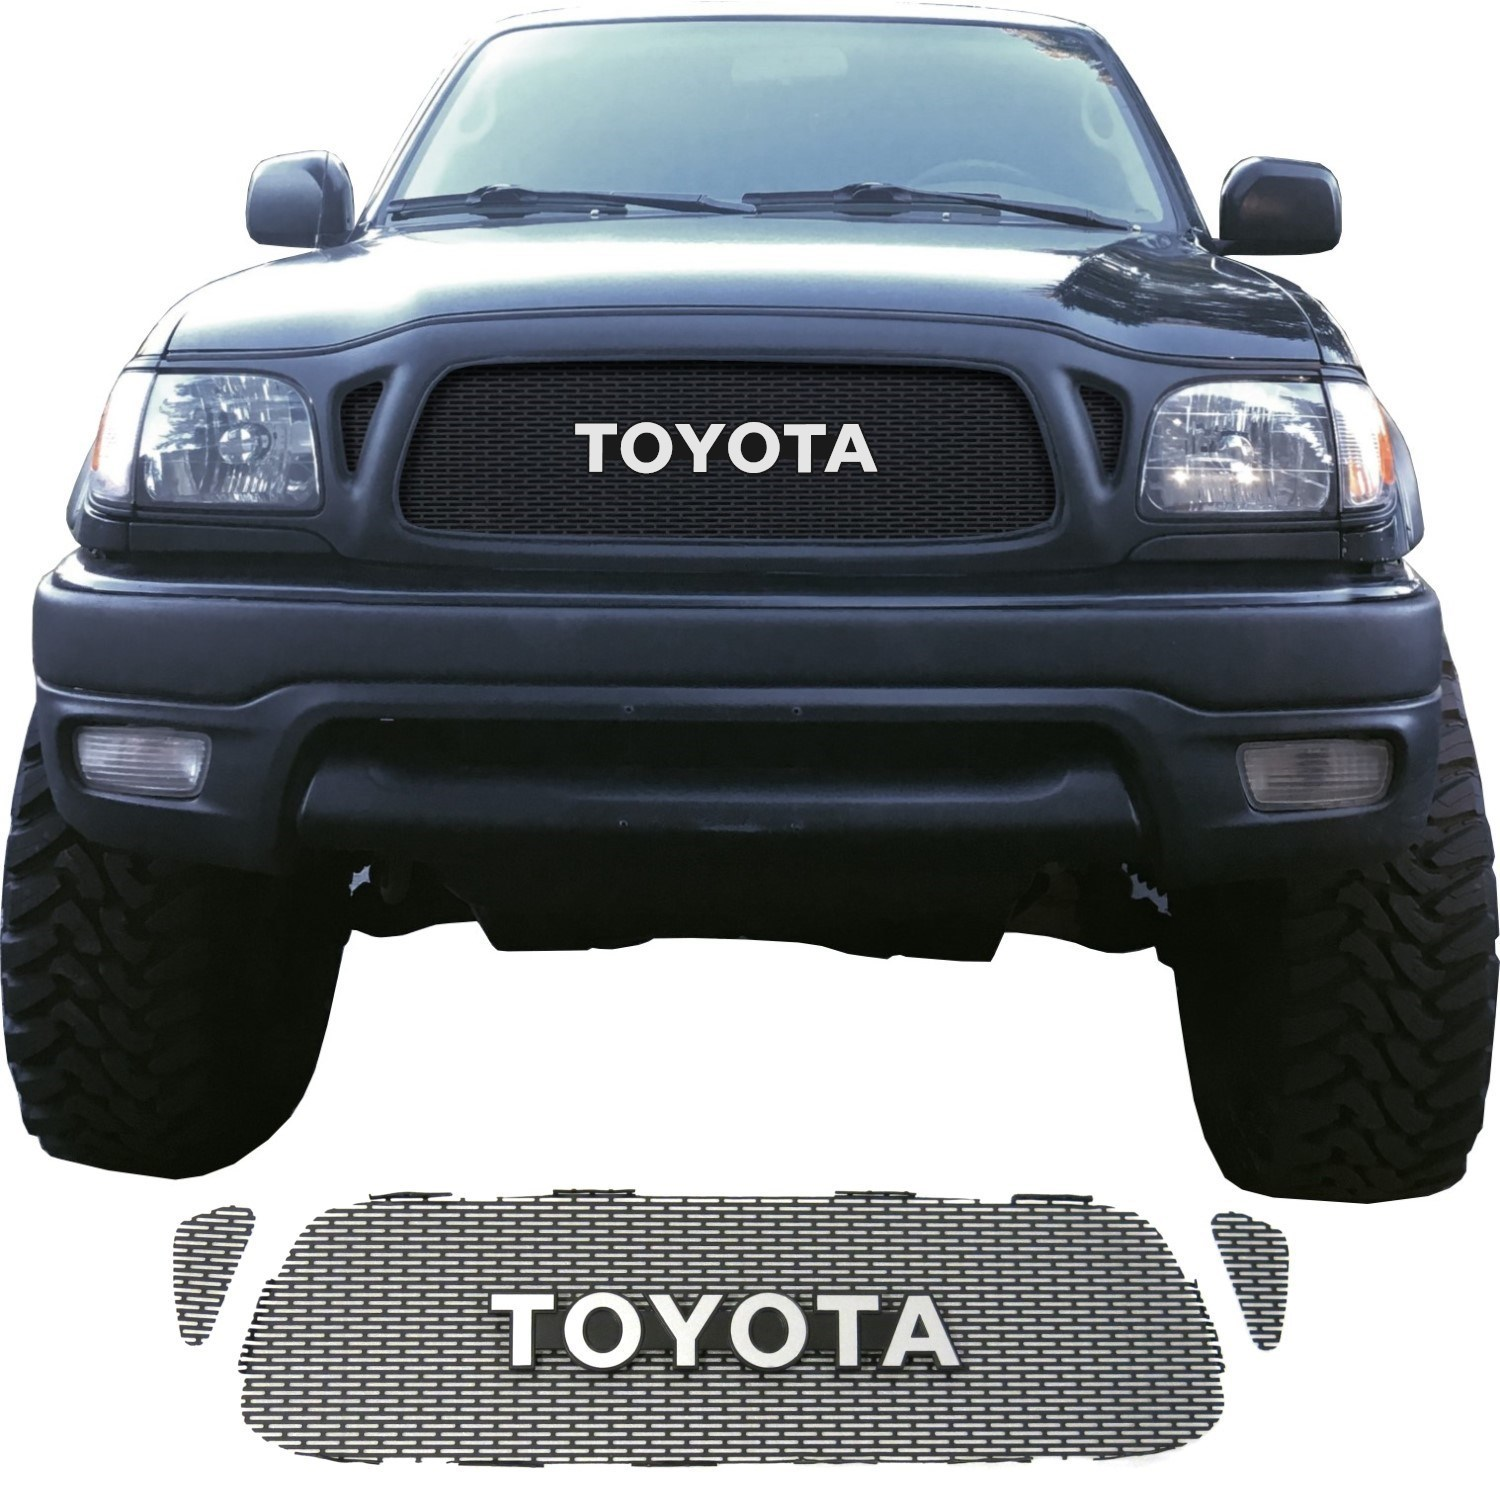 2001-04 Toyota Tacoma Grill Mesh With Toyota Emblem